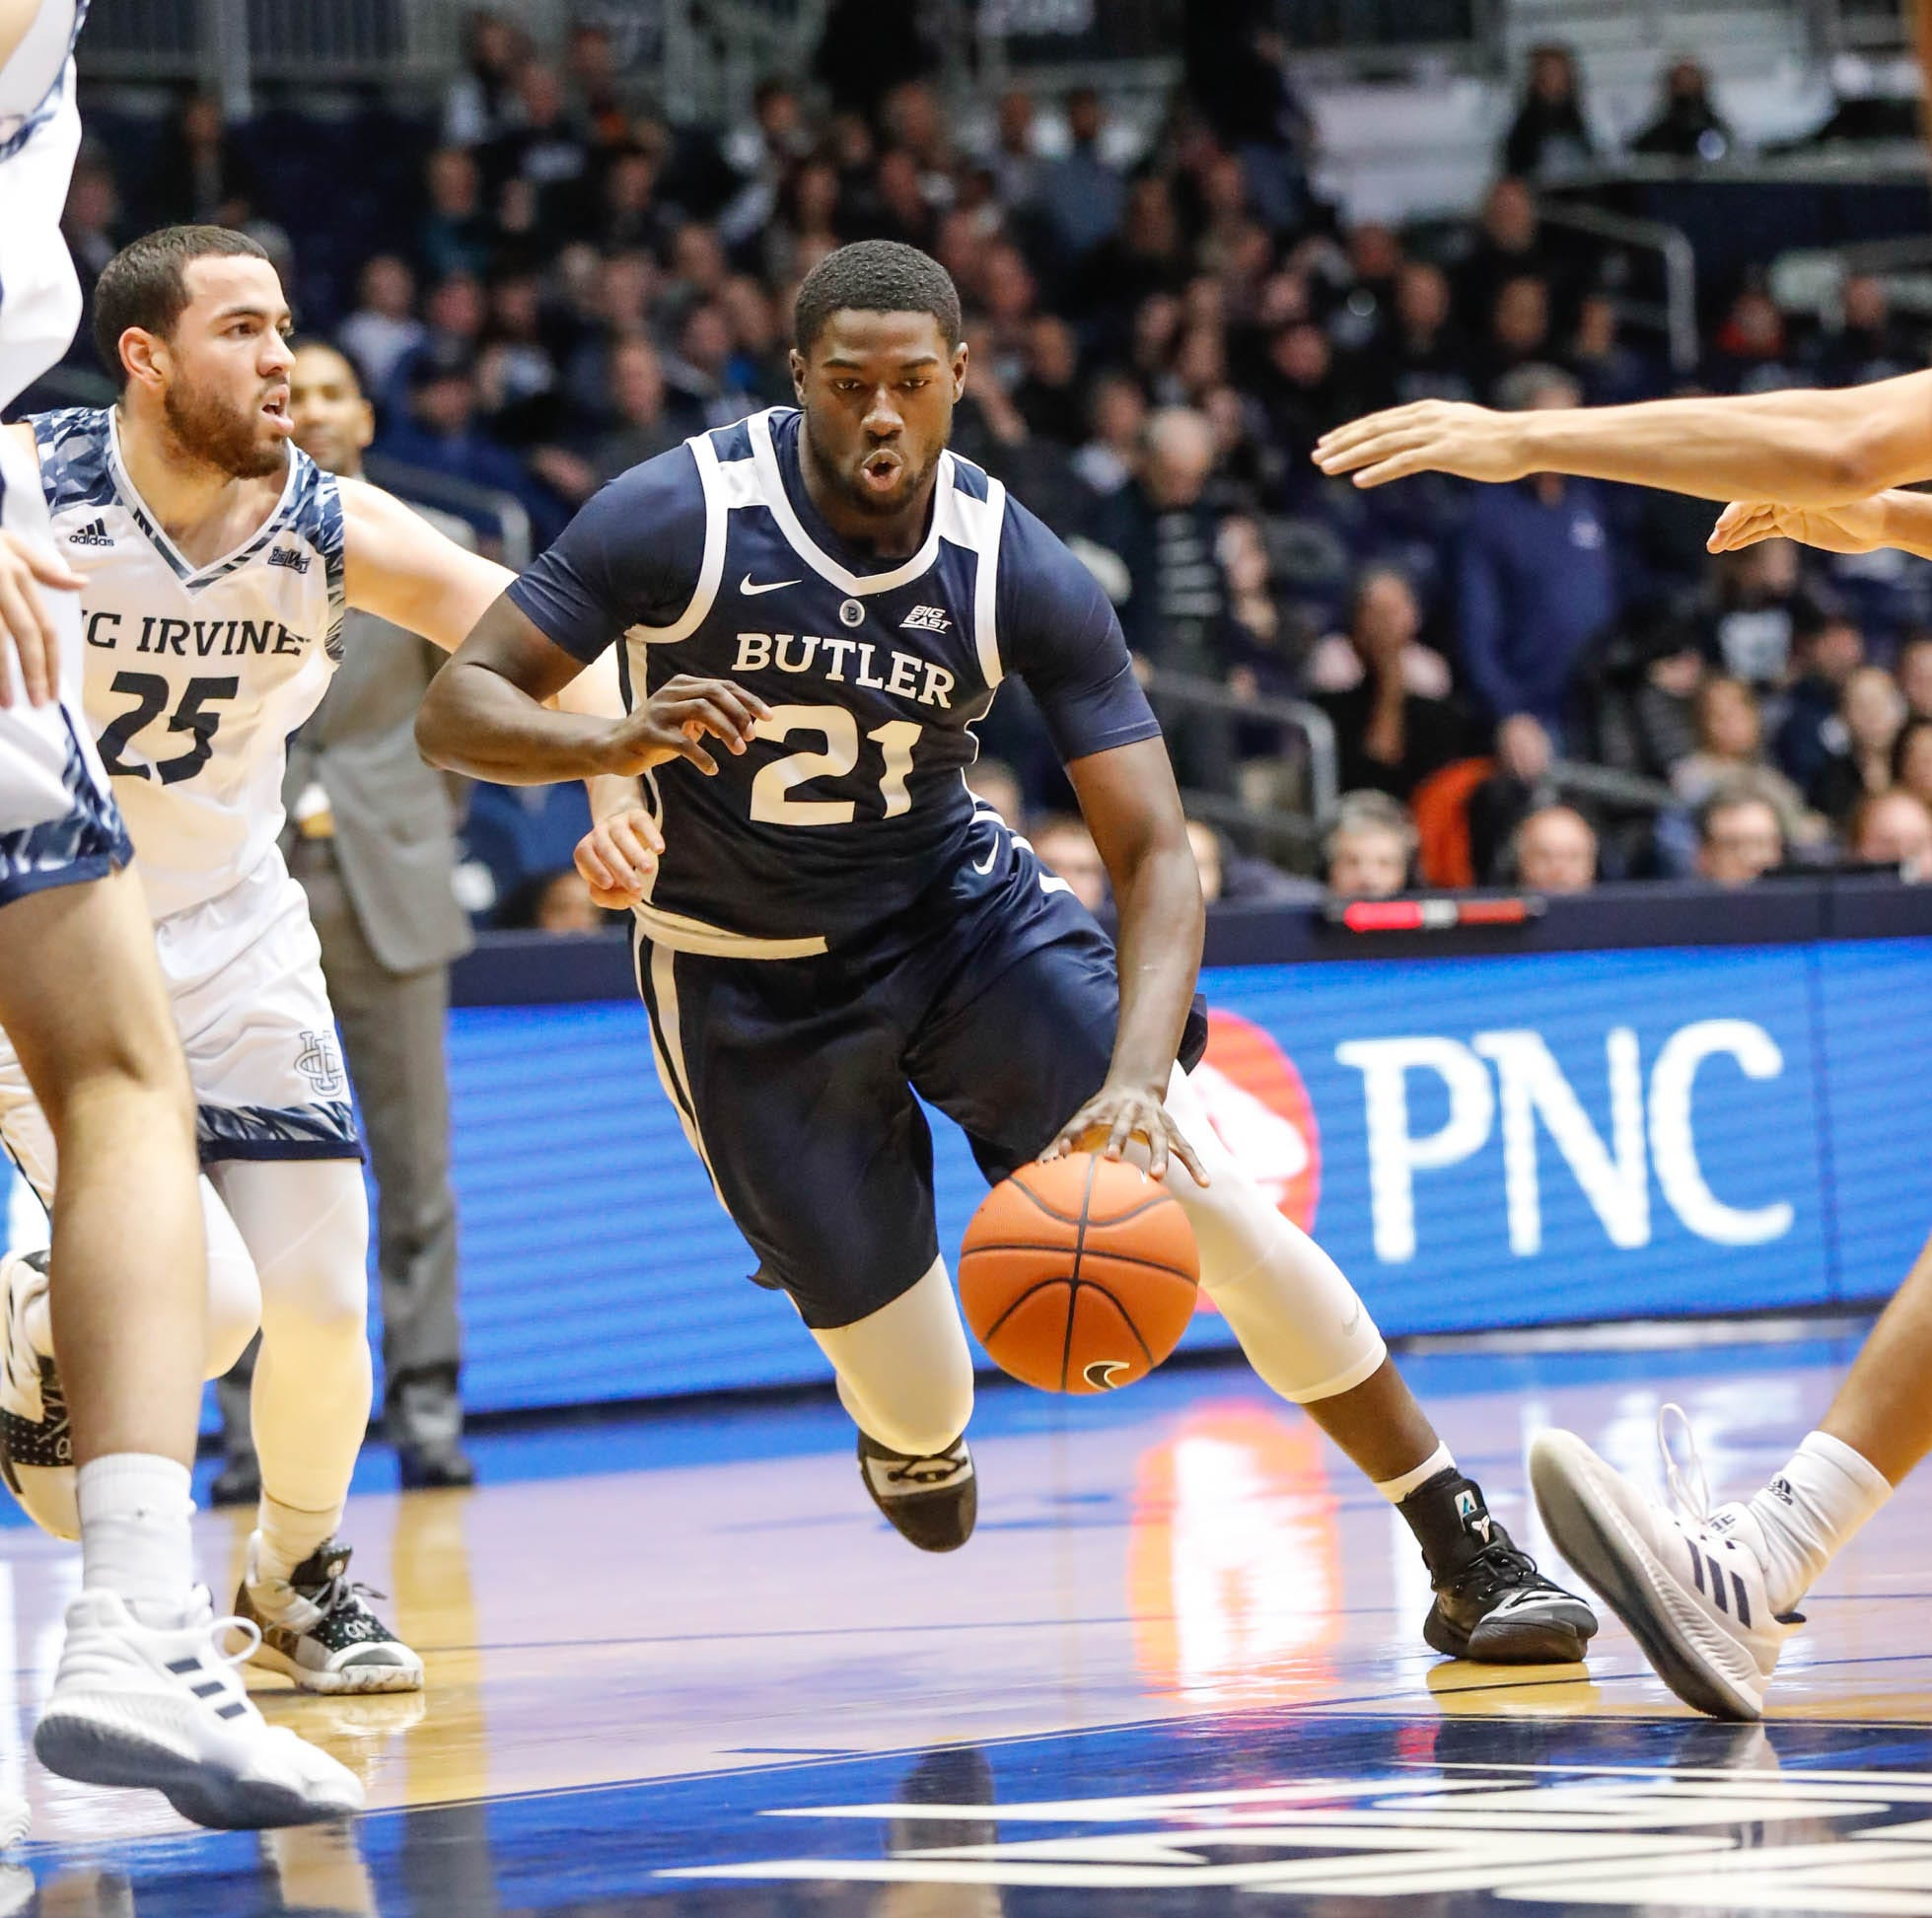 Jerald Gillens-Butler becomes second Butler player to transfer